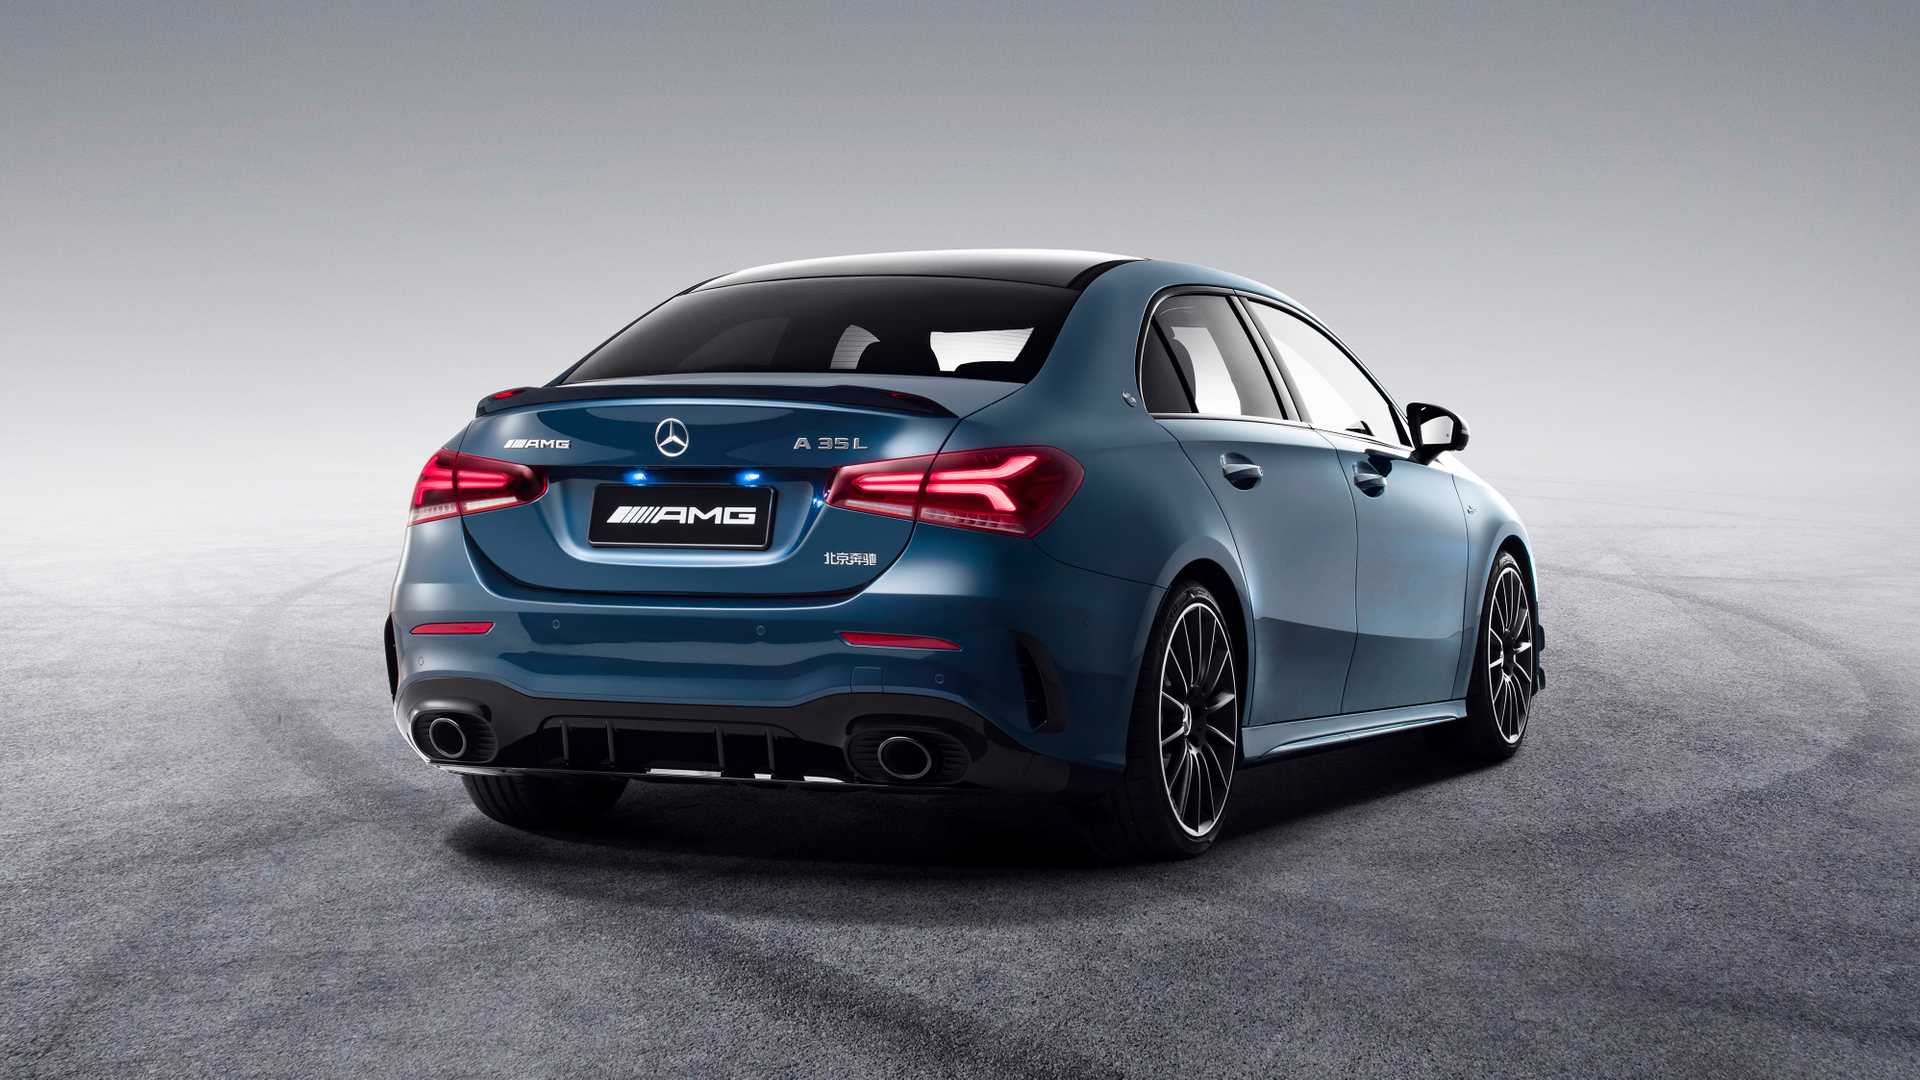 2020 Mercedes-AMG A35 L Sedan 4MATIC Rear Three-Quarter Wallpaper (5)